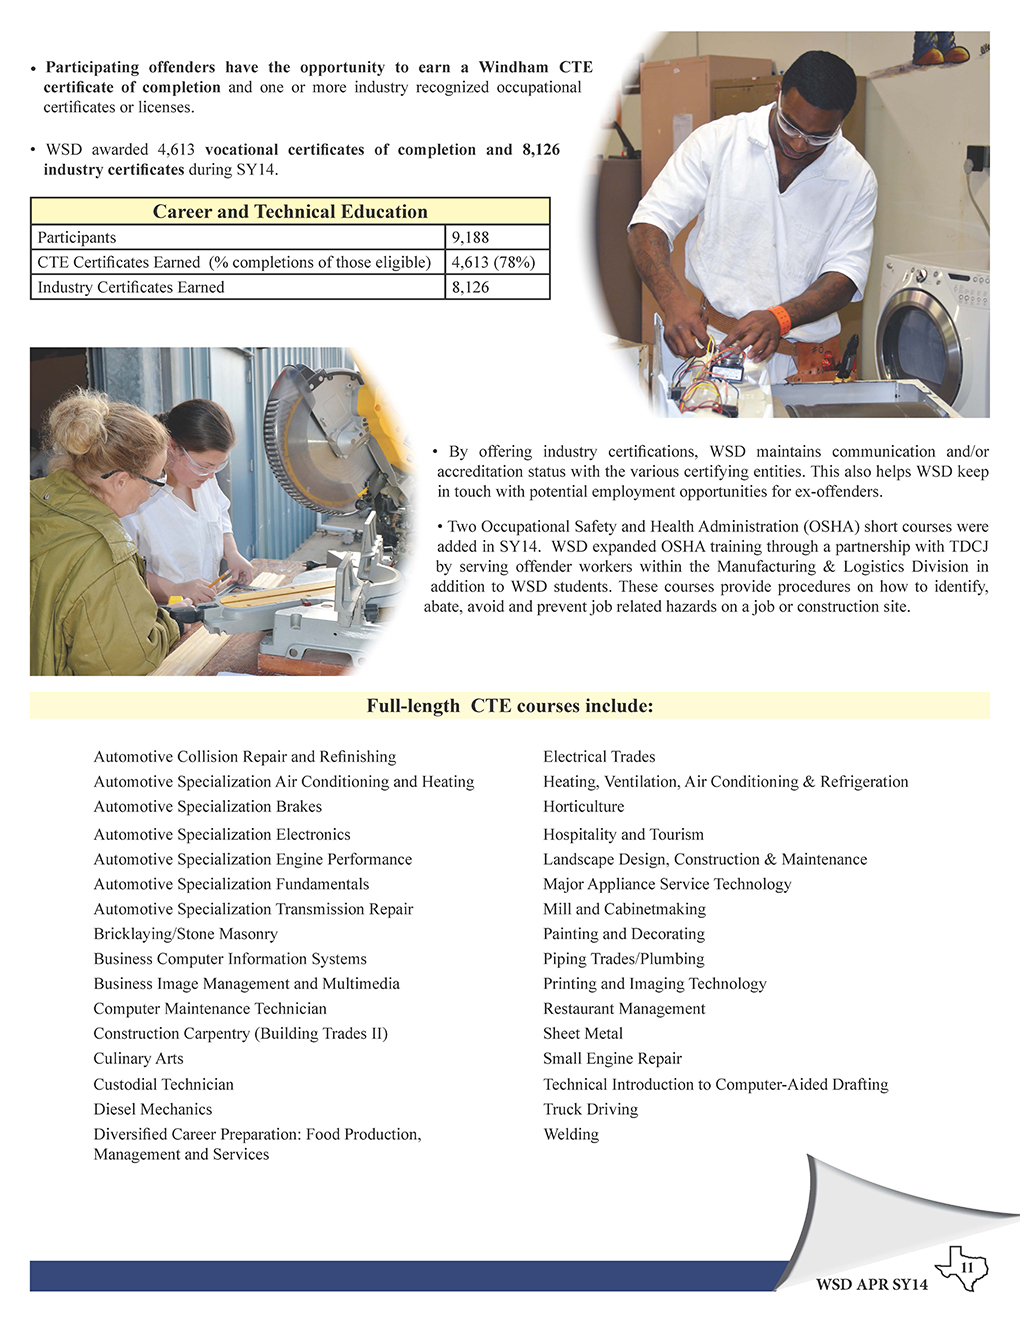 Annual Performance Report 2013-2014